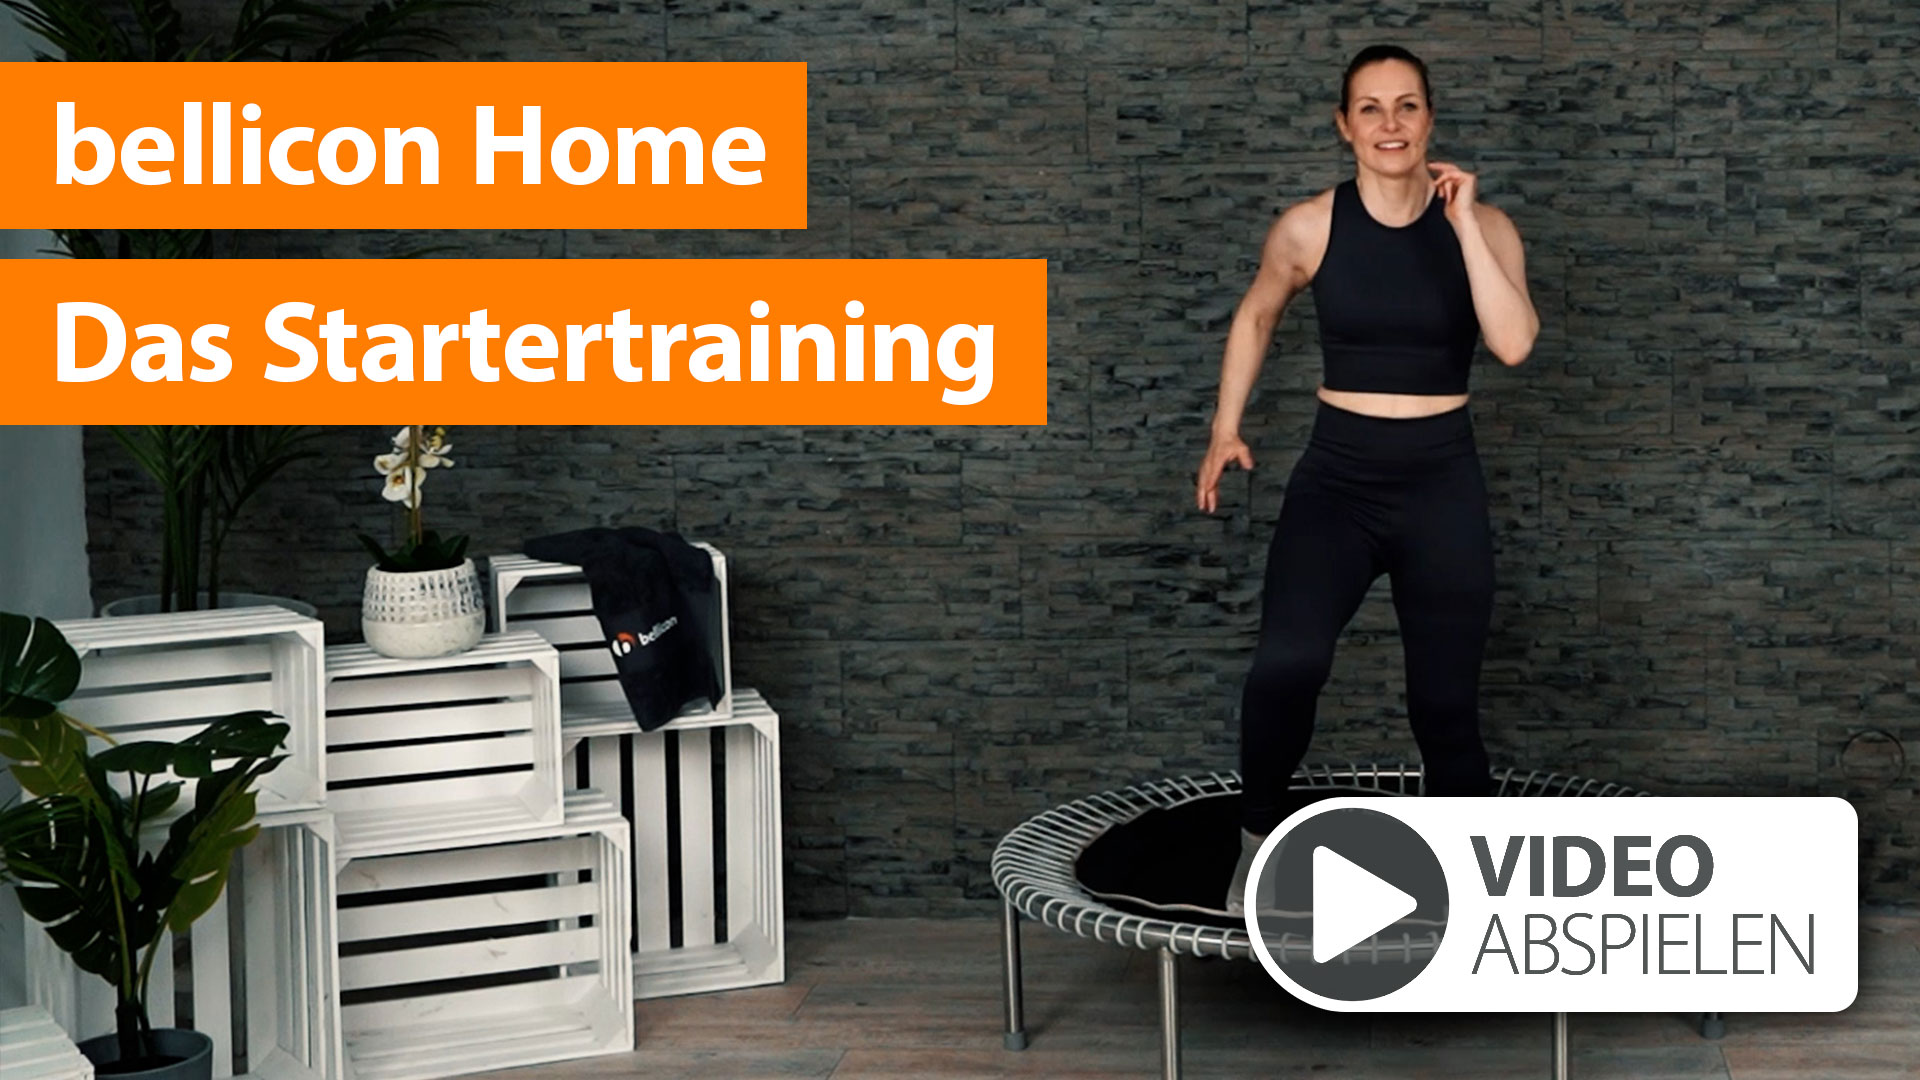 bellicon Home: Das Startertraining